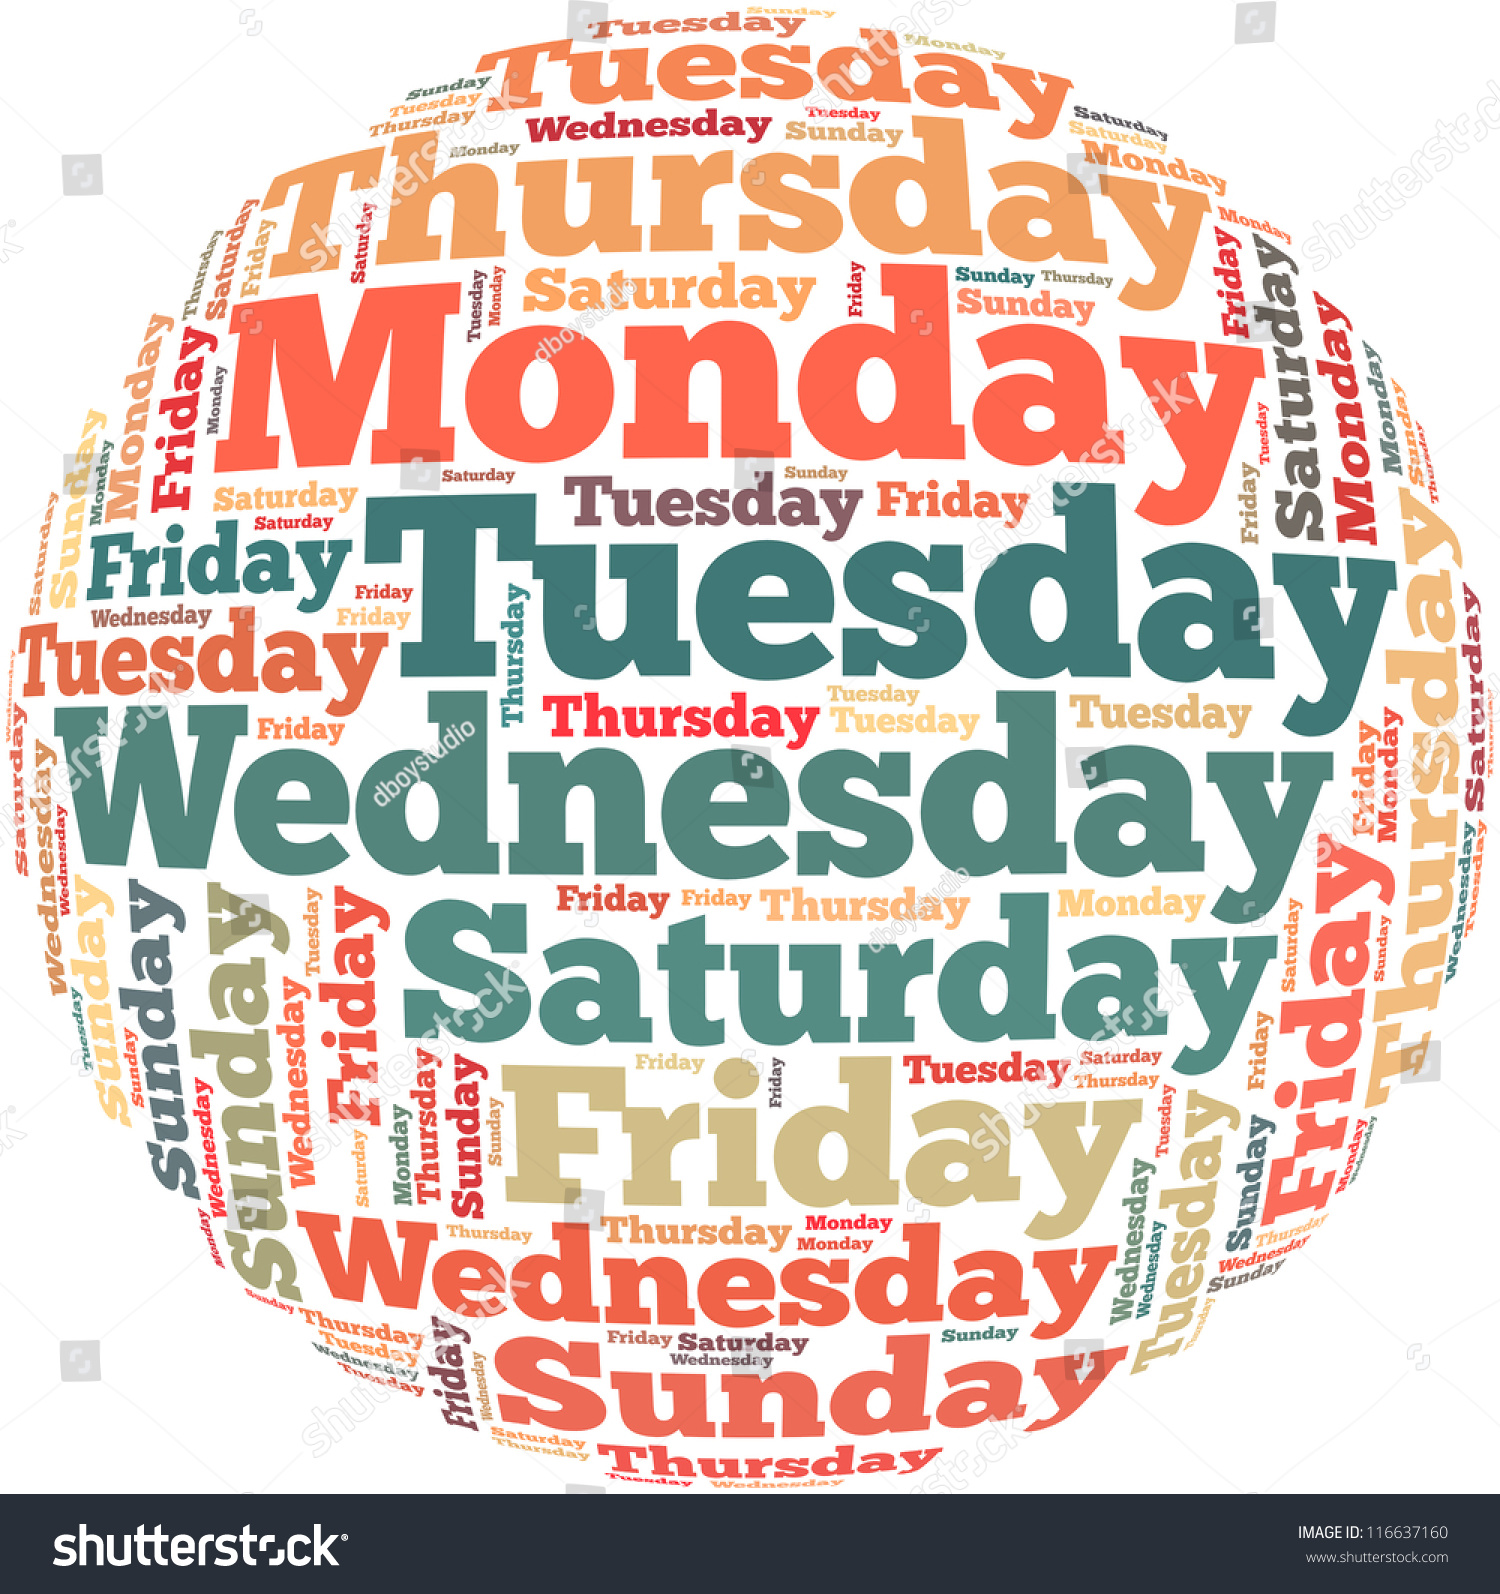 Weekdays Pictures to Pin on Pinterest - PinsDaddy